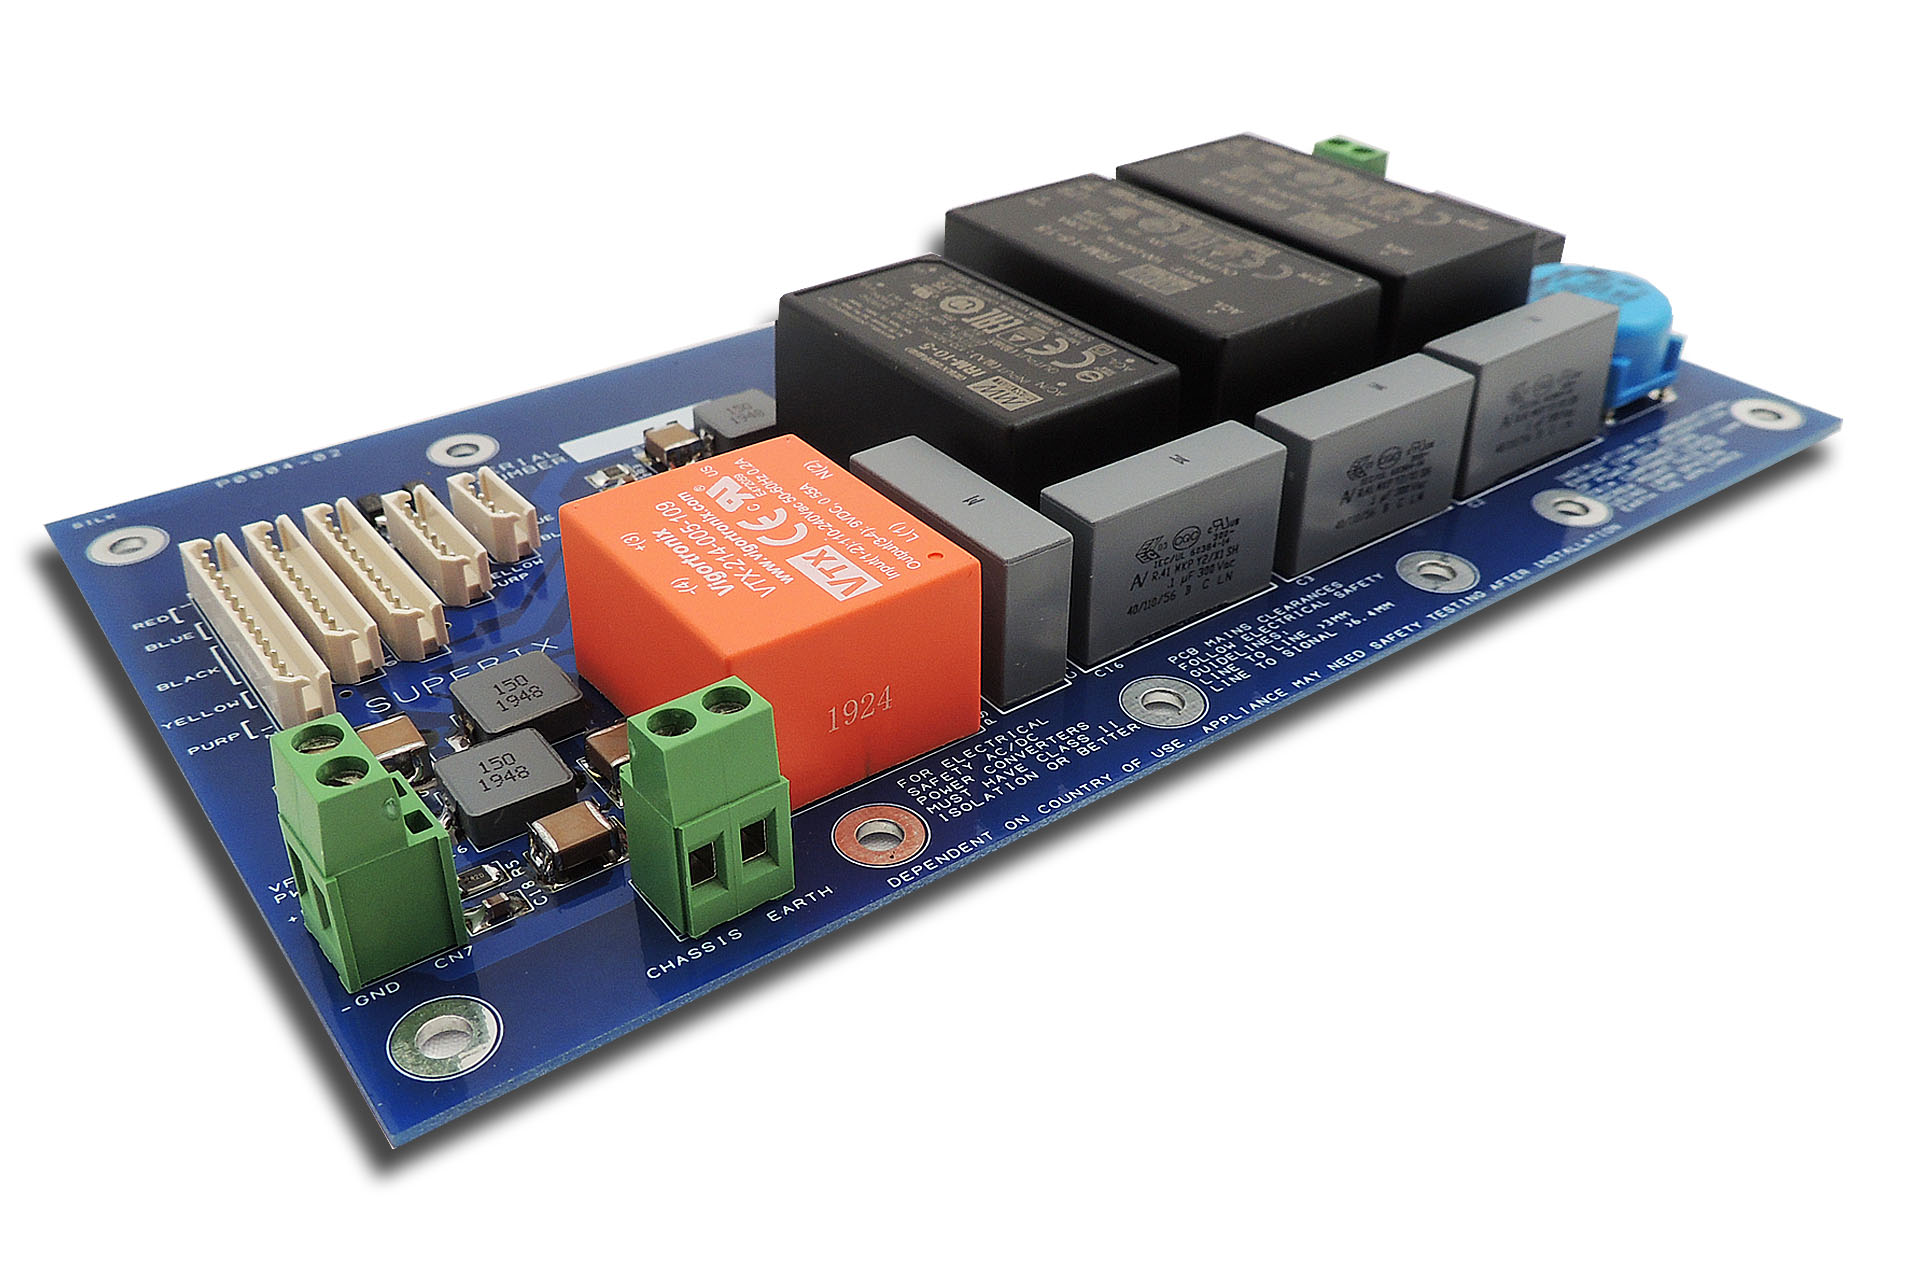 Switched-mode power supply for Roland MKS-70